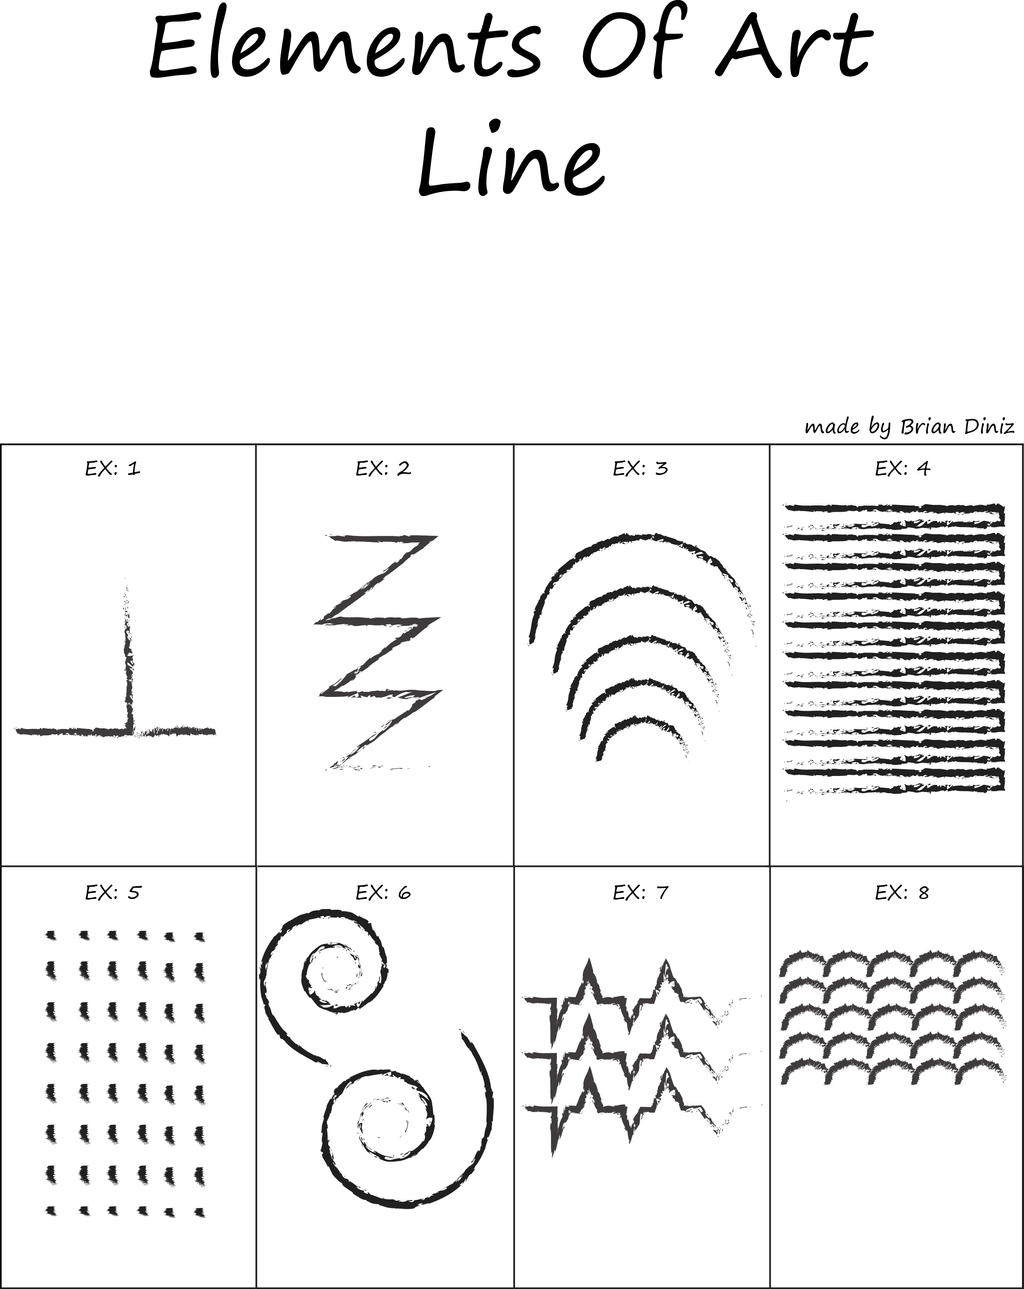 Elements Of Art Line Quiz : Elements of art line worksheet ixiplay free